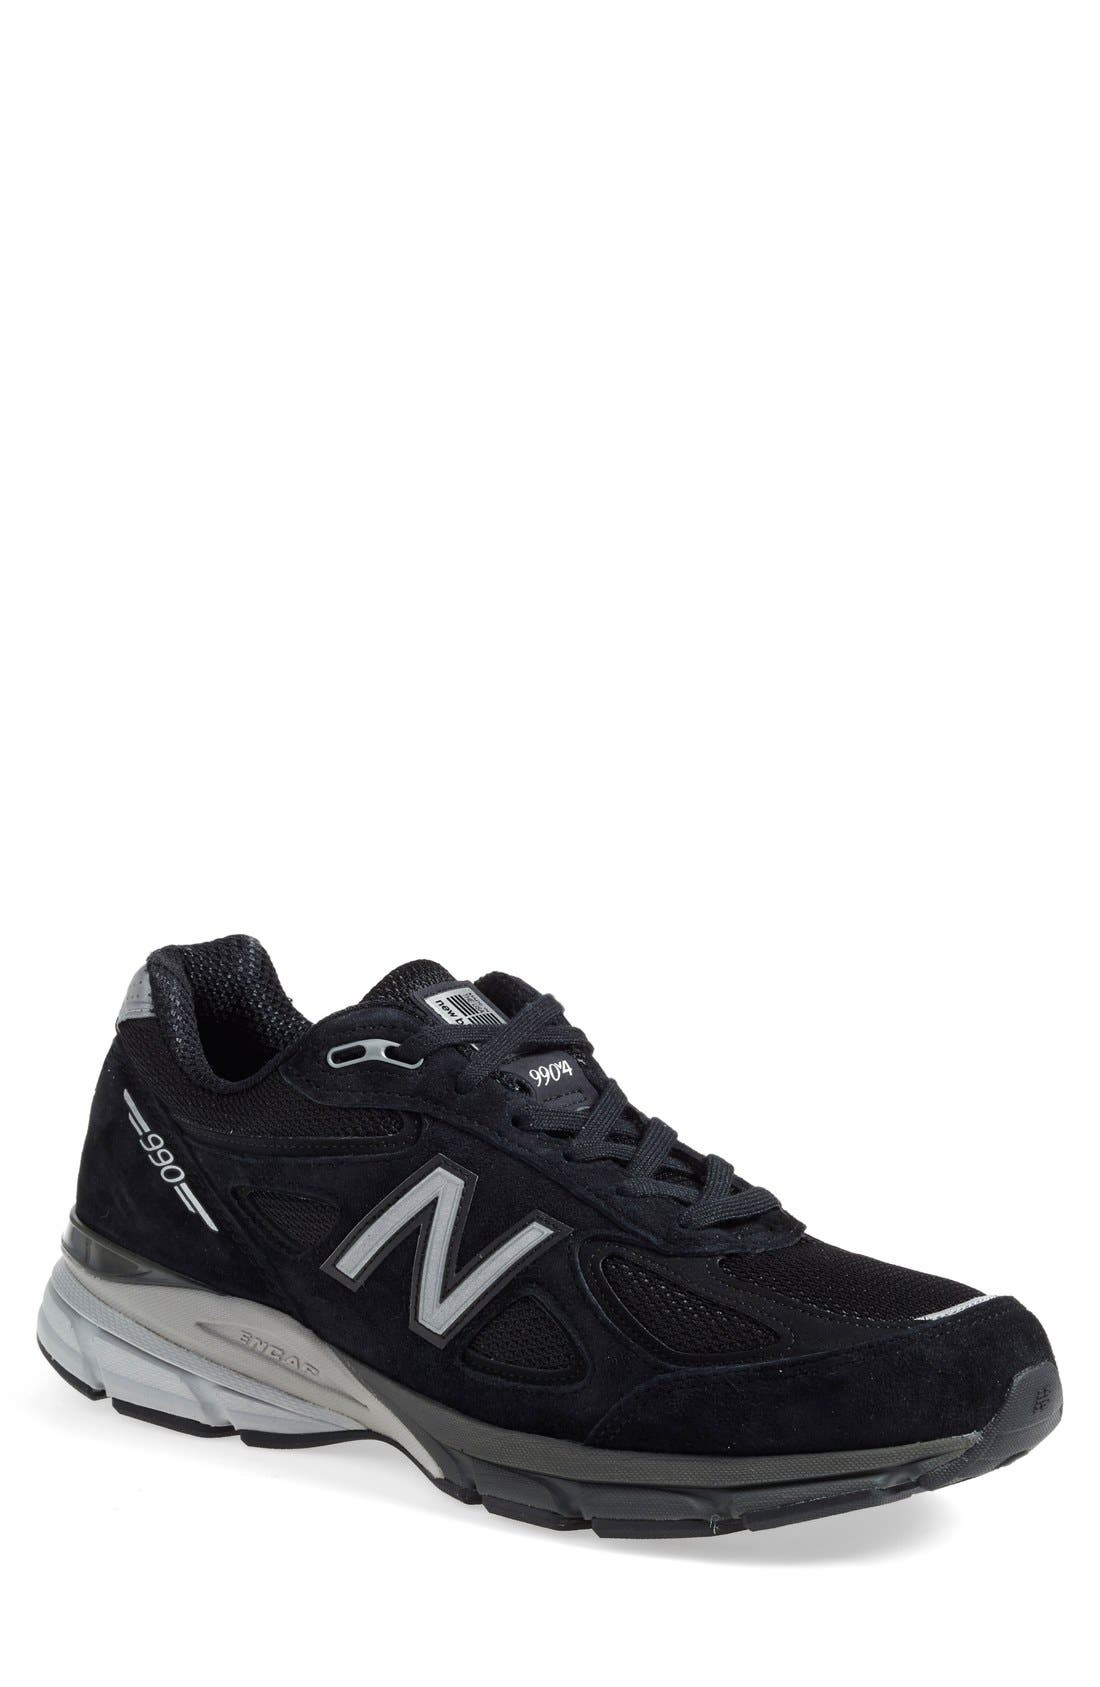 '990' Running Shoe,                         Main,                         color, BLACK